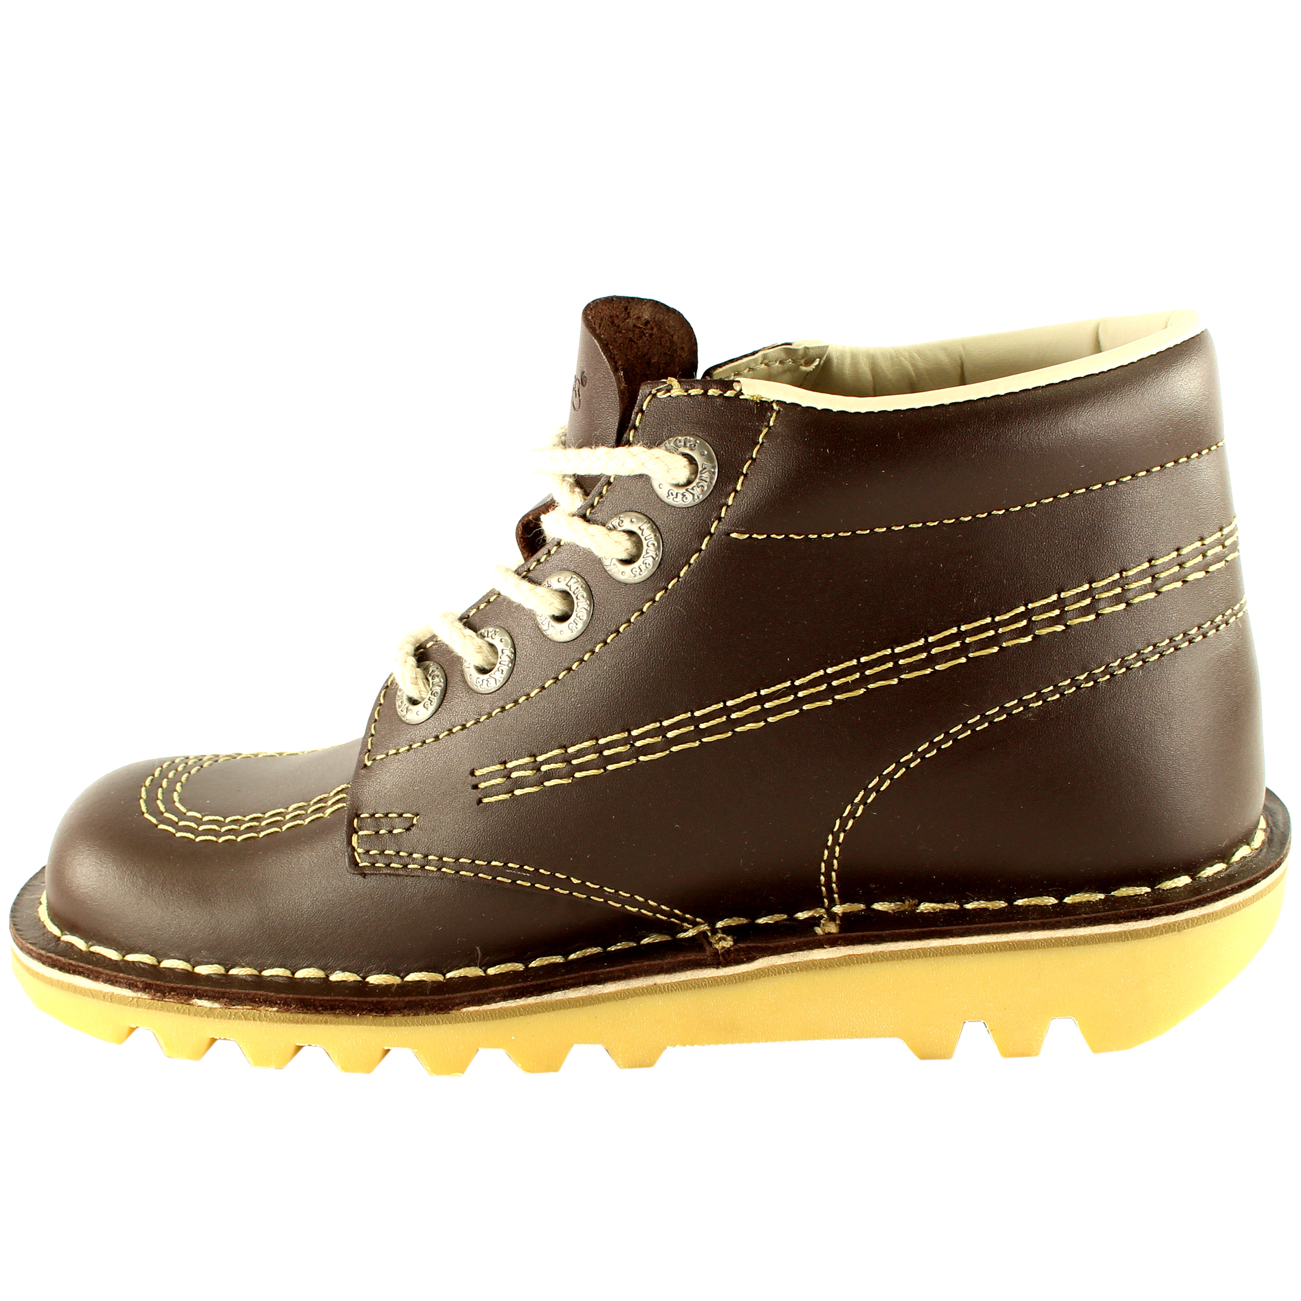 4cff0aaf05 Ladies Kickers Kick Hi Core Classic Leather Office Work Boots Shoes ...